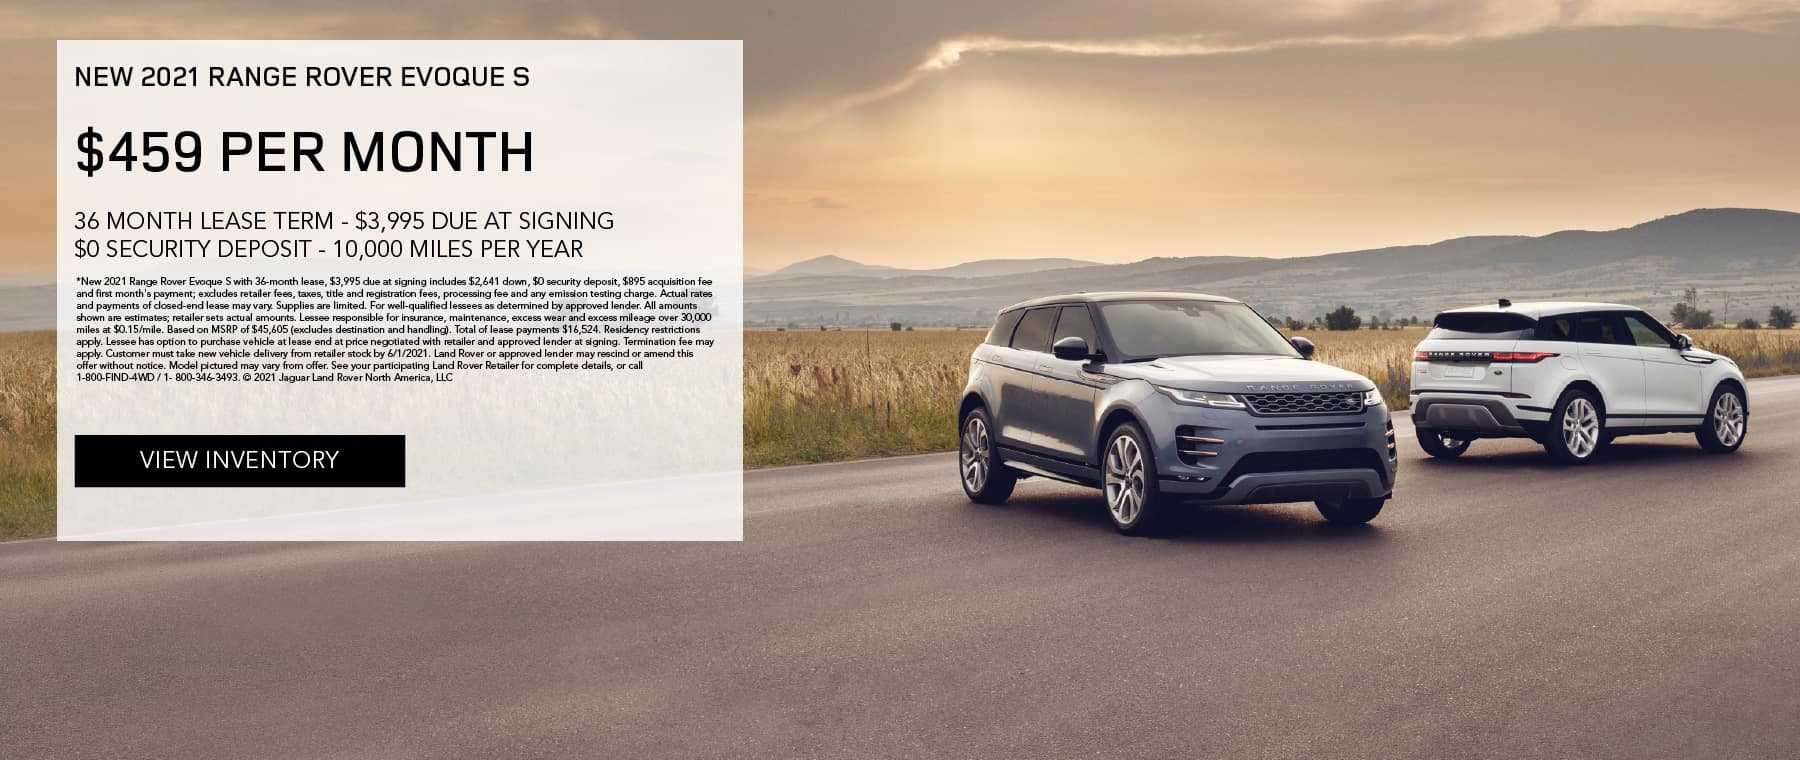 NEW 2021 RANGE ROVER EVOQUE S. $459 PER MONTH. 36 MONTH LEASE TERM. $3,995 CASH DUE AT SIGNING. $0 SECURITY DEPOSIT. 10,000 MILES PER YEAR. EXCLUDES RETAILER FEES, TAXES, TITLE AND REGISTRATION FEES, PROCESSING FEE AND ANY EMISSION TESTING CHARGE. OFFER ENDS 6/1/2021. VIEW INVENTORY. BLUE AND SILVER RANGE ROVER EVOQUE MODELS PARKED IN COUNTRYSIDE.